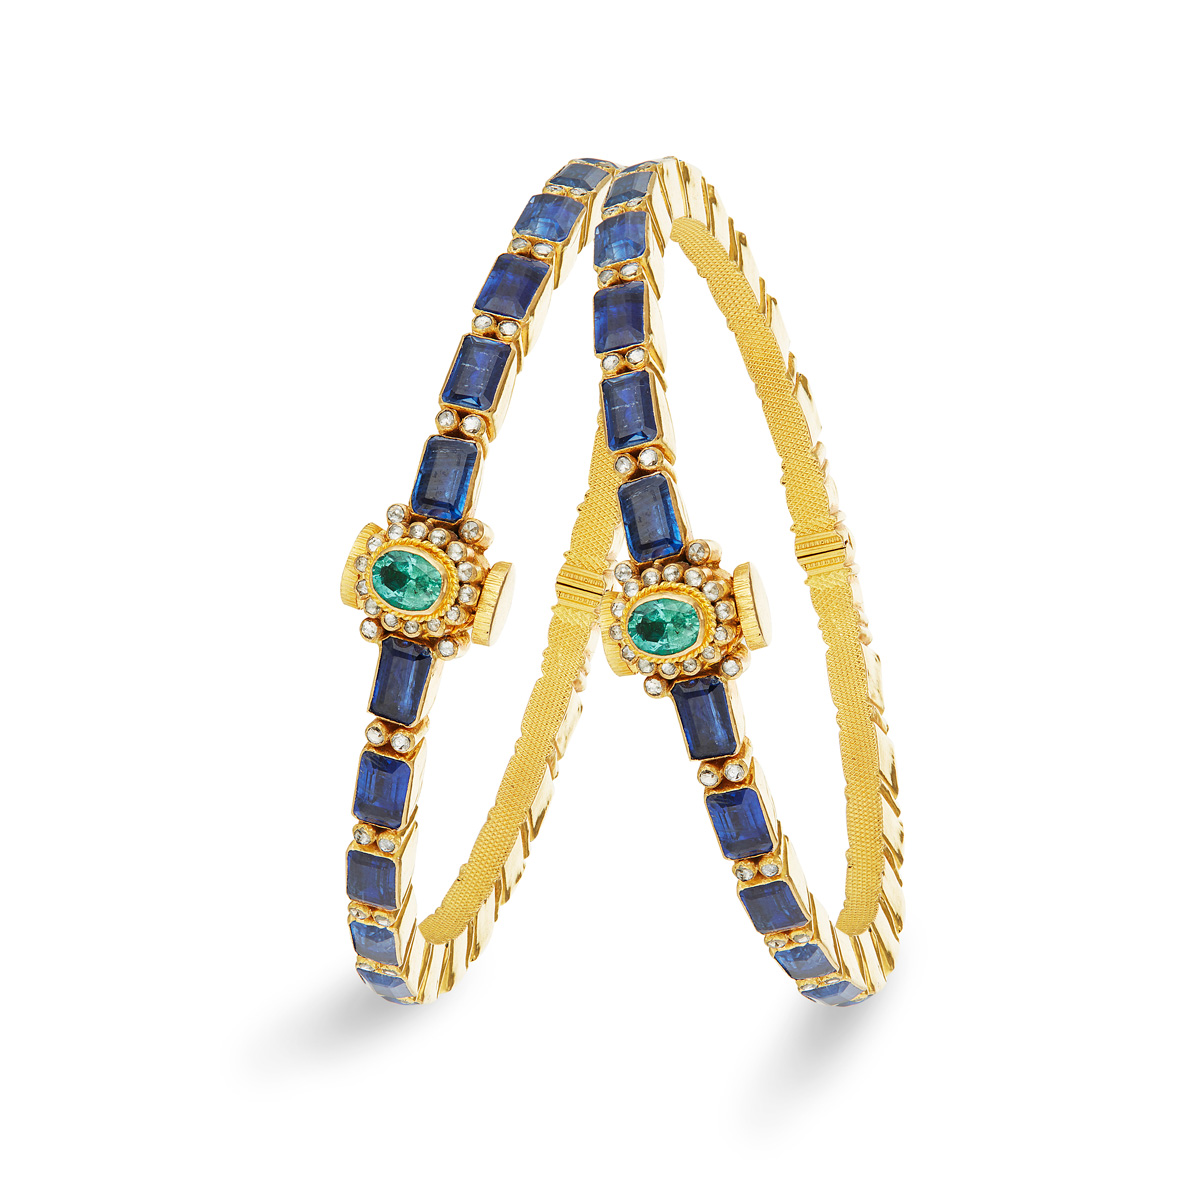 Graceful Pair of Bangles